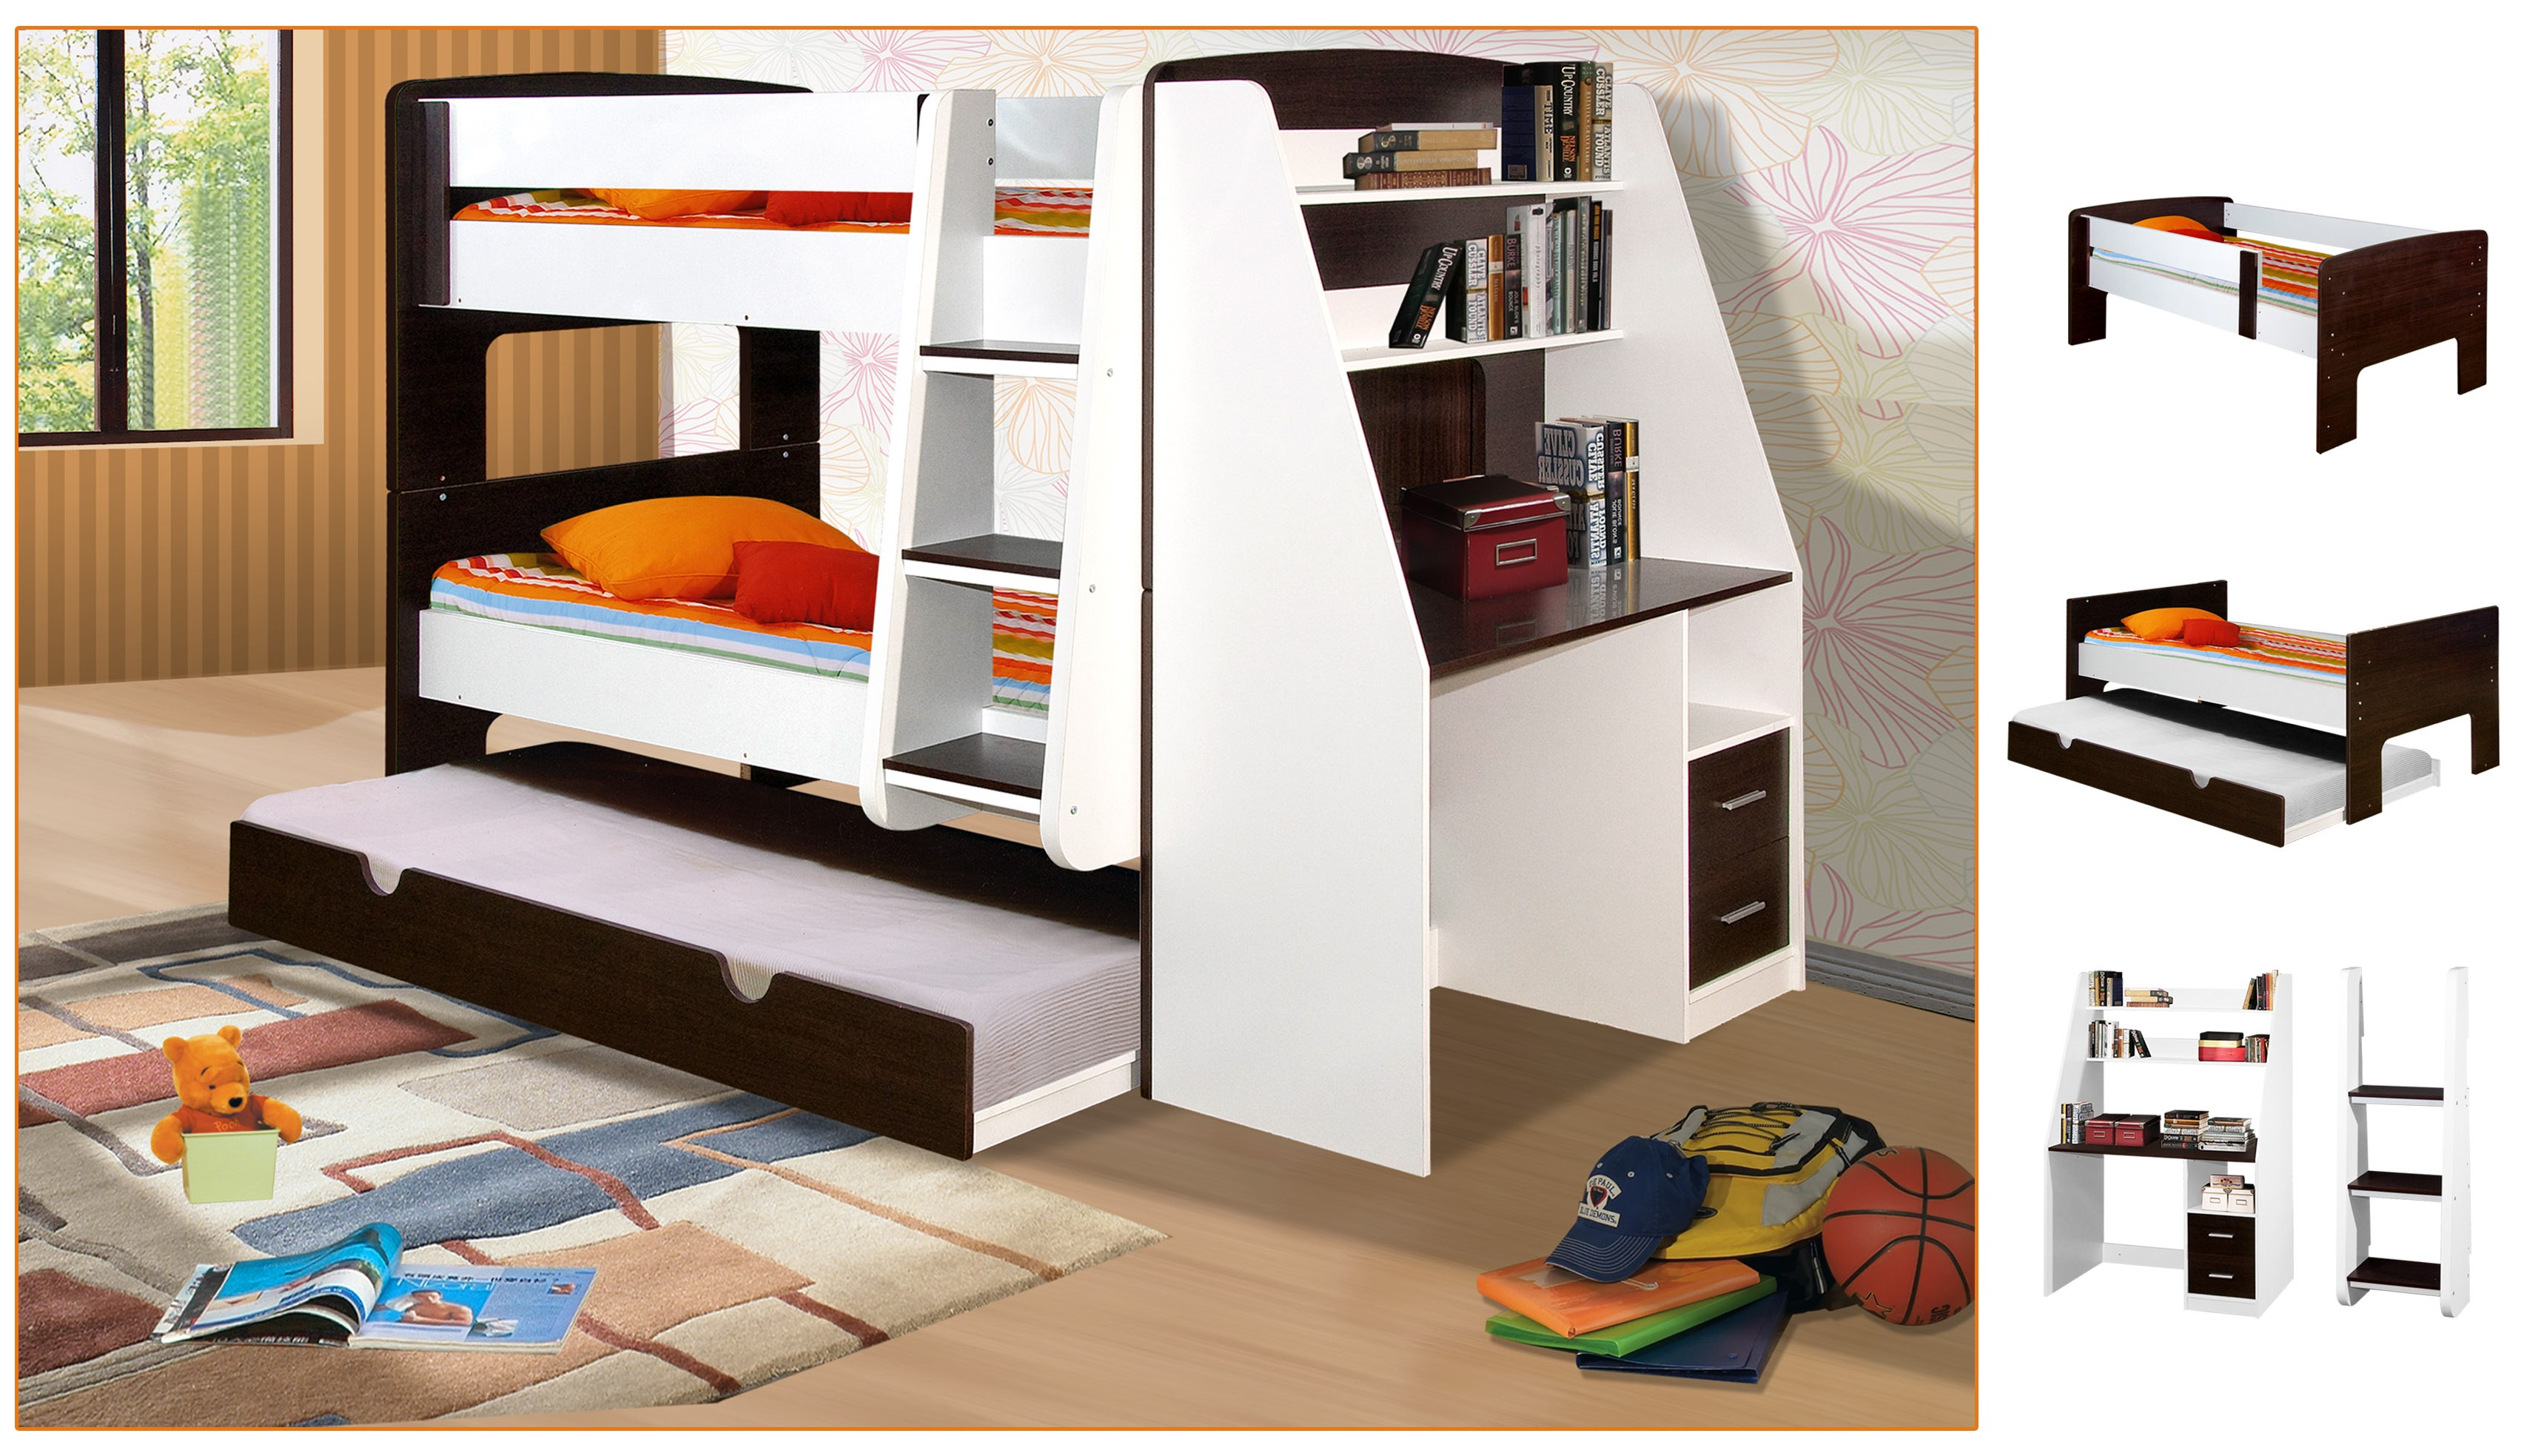 Modern bunk bed with trundle - California Single Bunk Beds With Trundle Bed And Desk